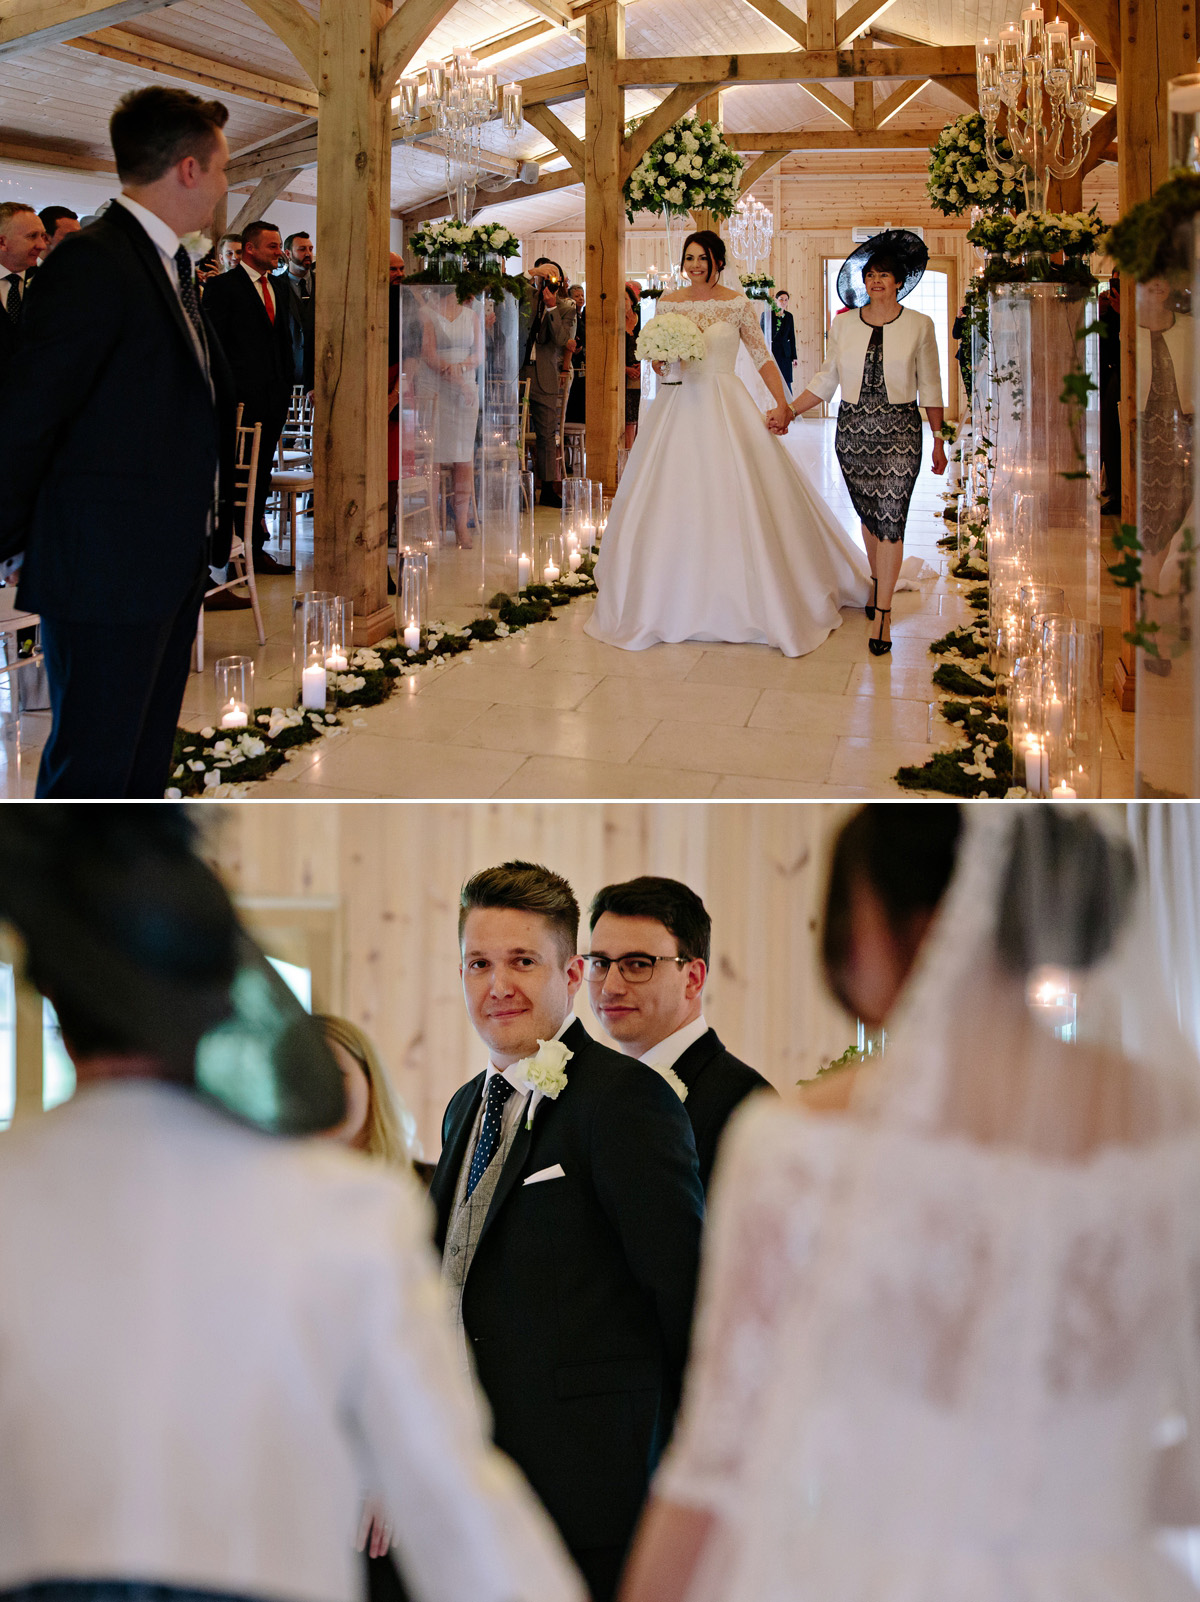 That first look between a bride and groom